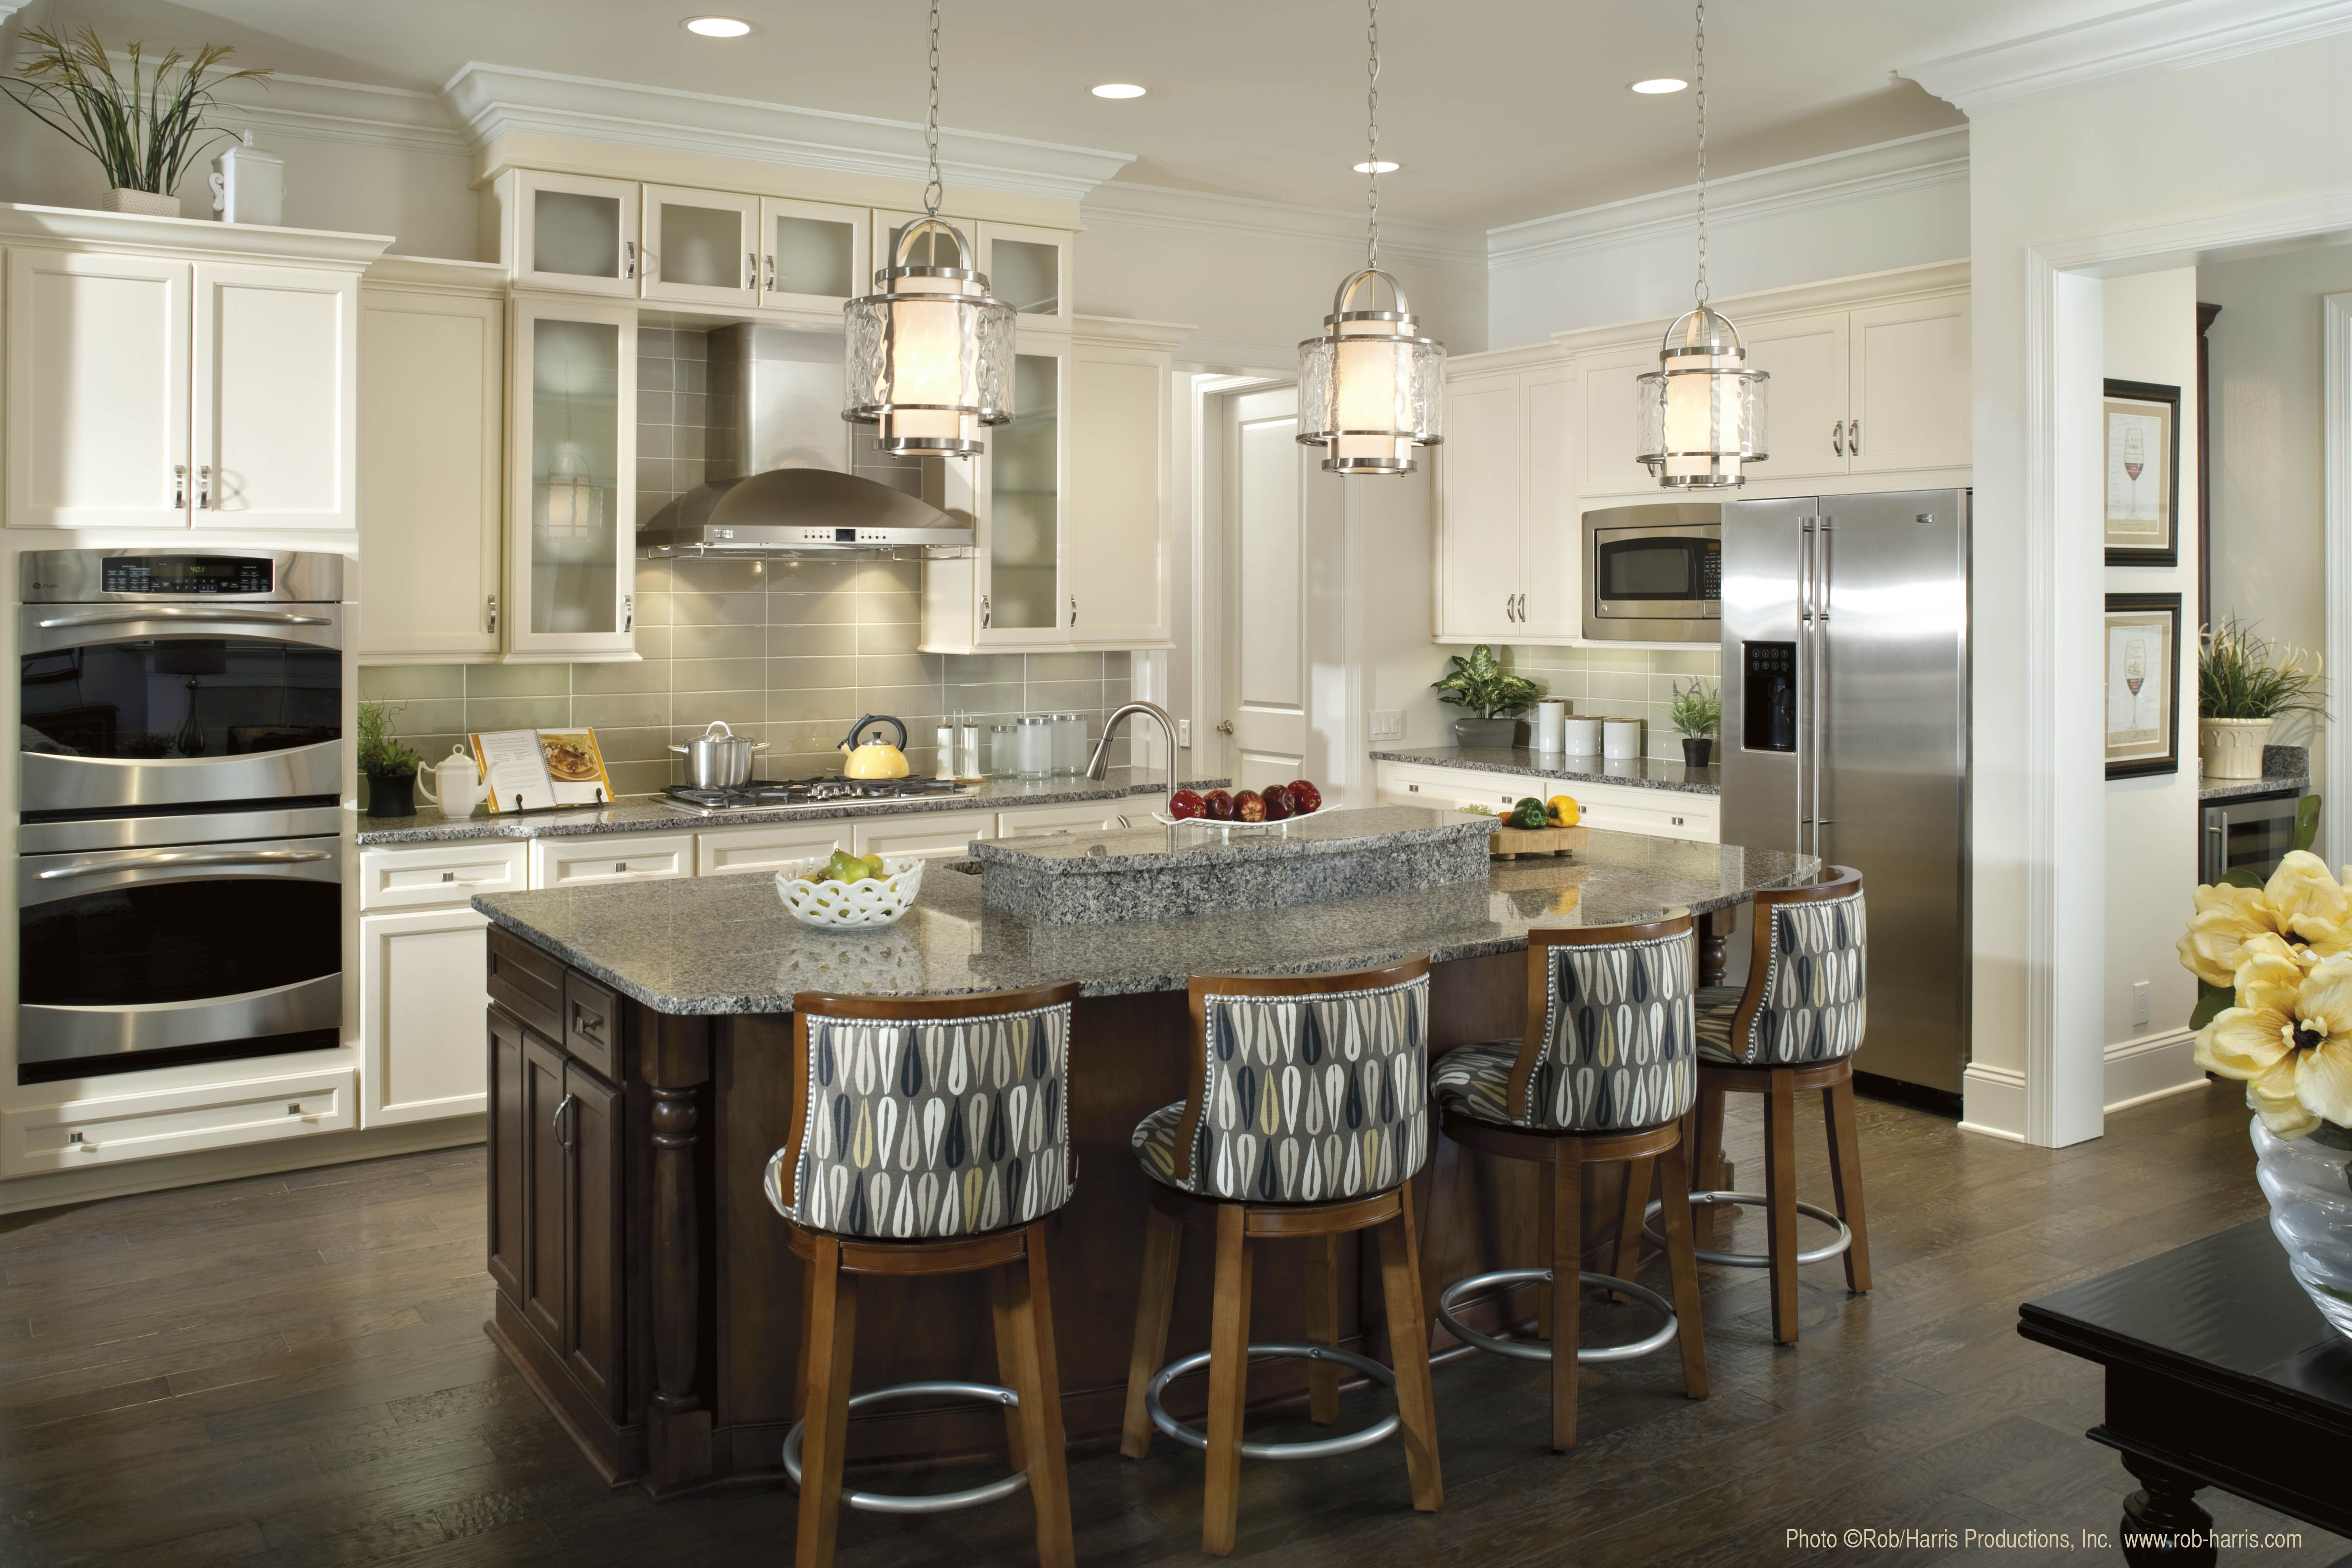 Pendant lighting over kitchen island the perfect amount of accent lighting over